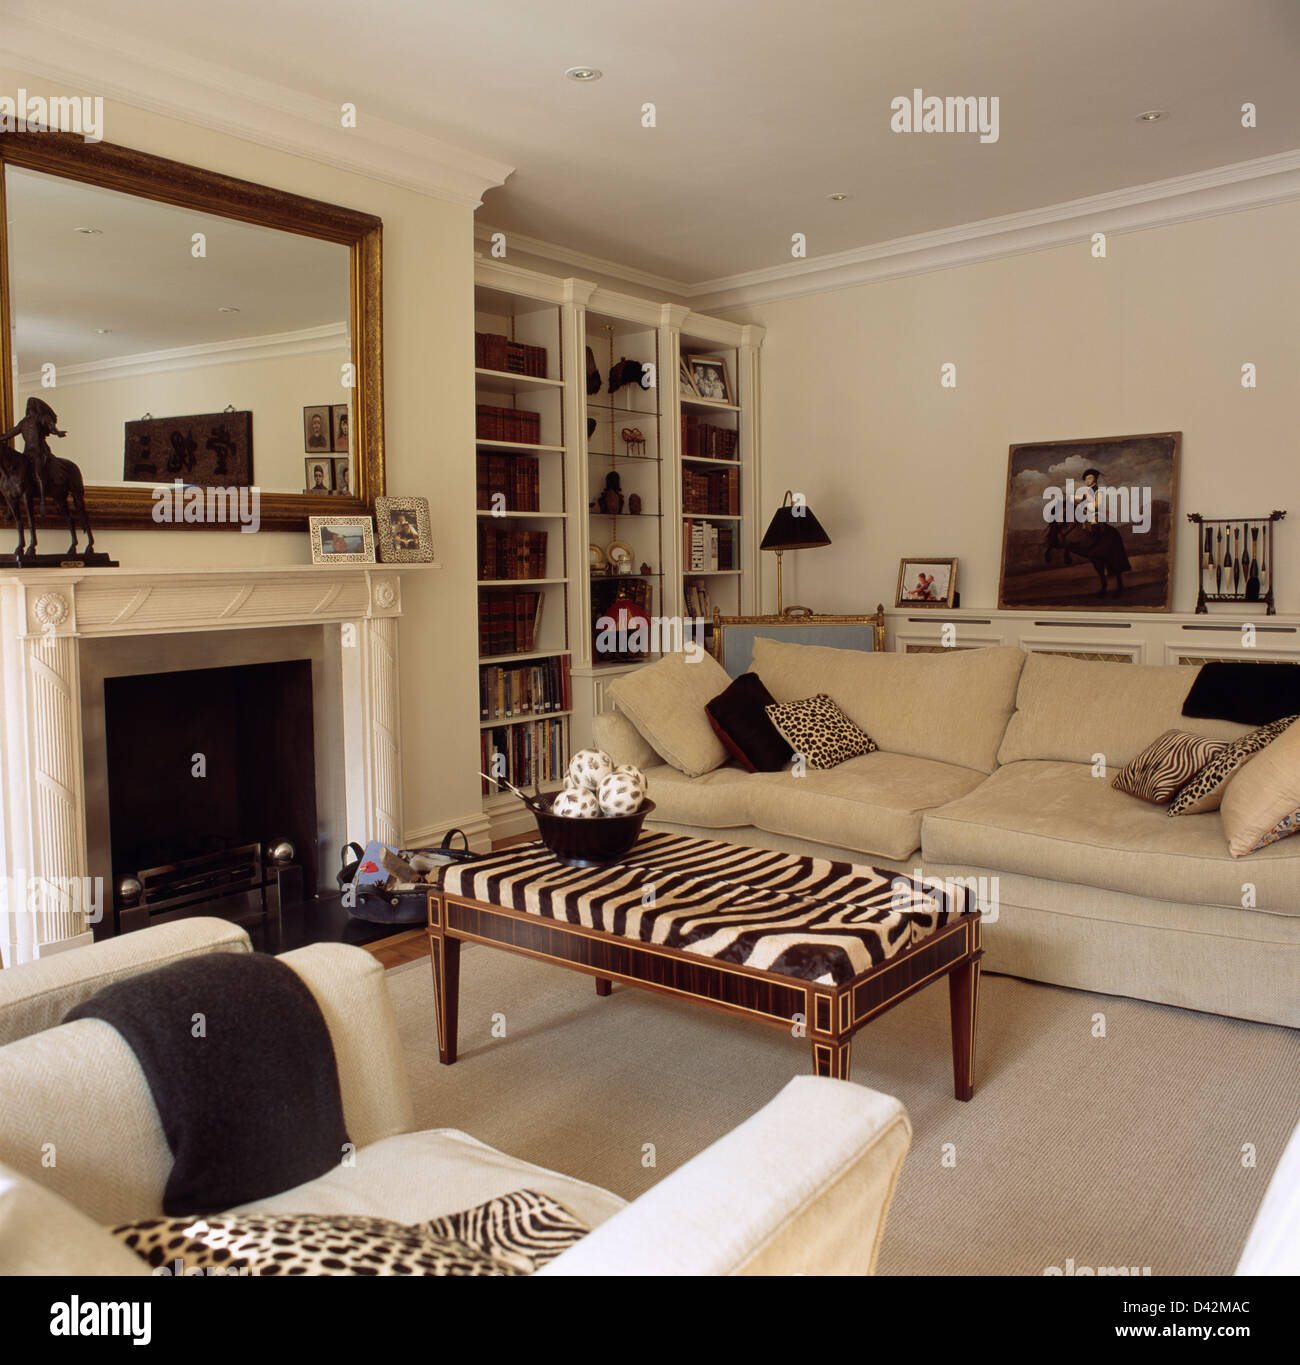 Stock Photo   Zebra Print Stool And Cream Sofa In Elegant Living Room With  Large Mirror Above Marble Fireplace Between Fitted Bookcases Part 64